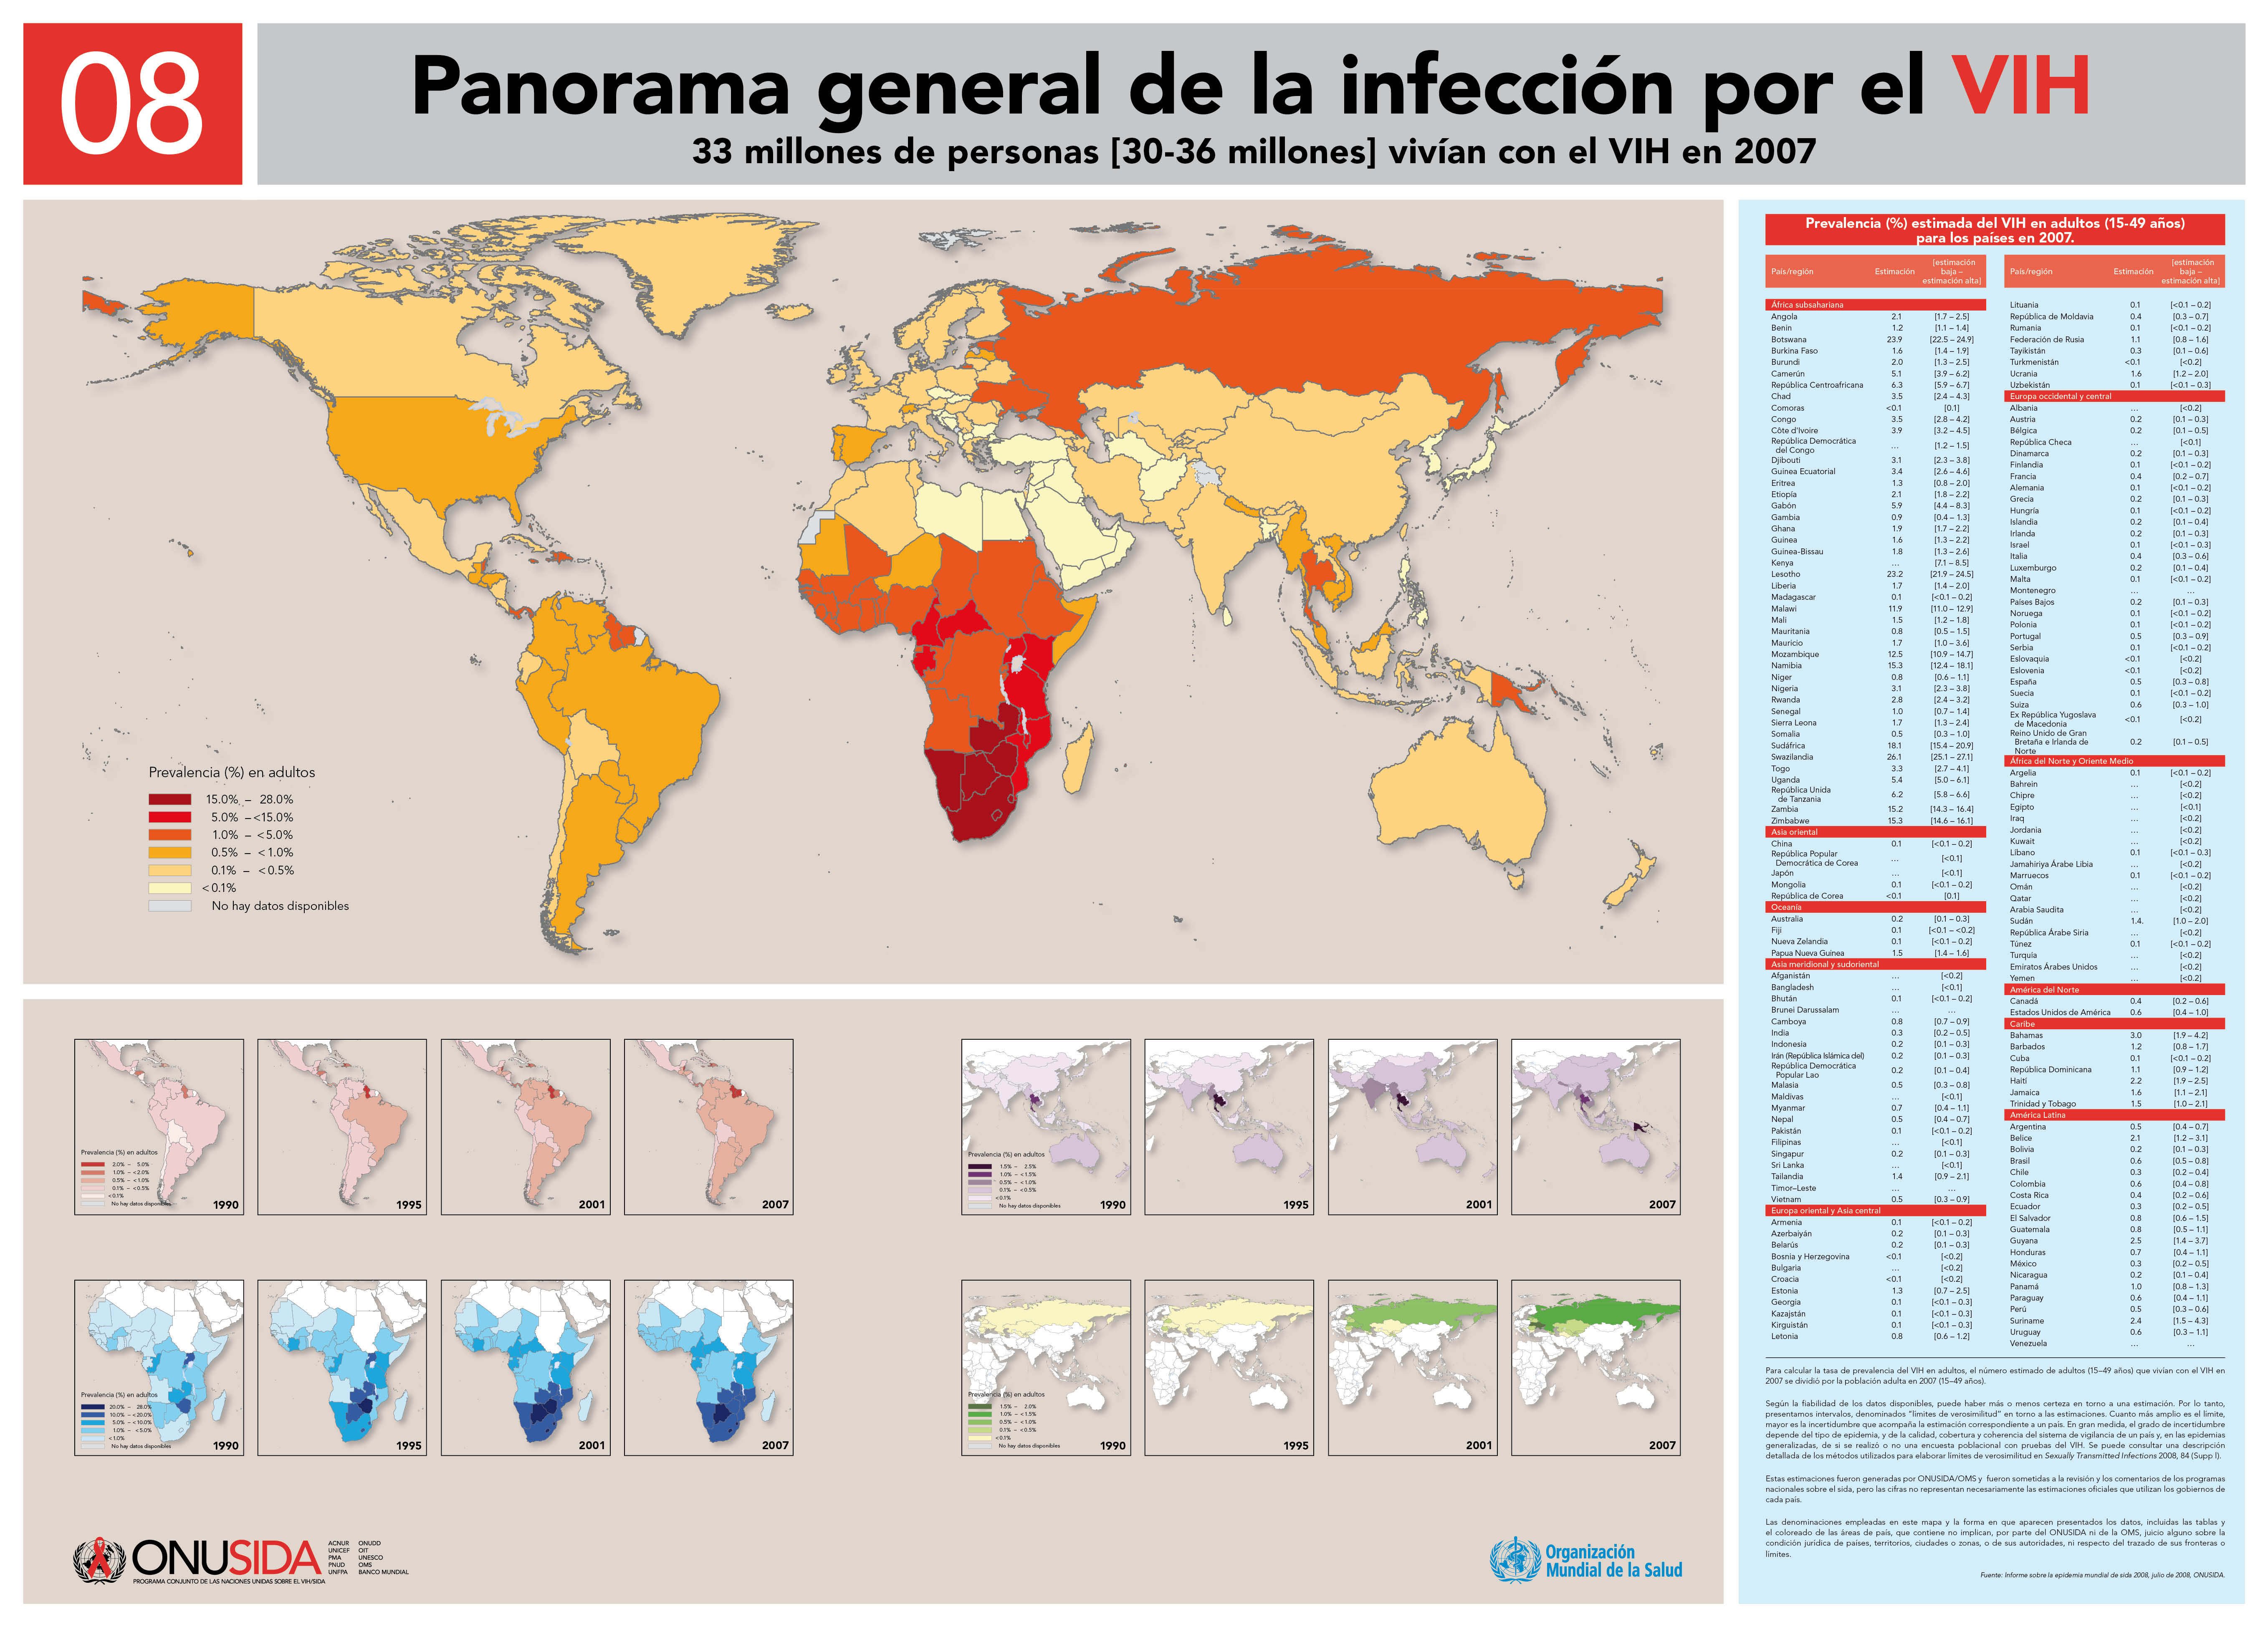 Infected by HIV/AIDS in the World 1990-2008